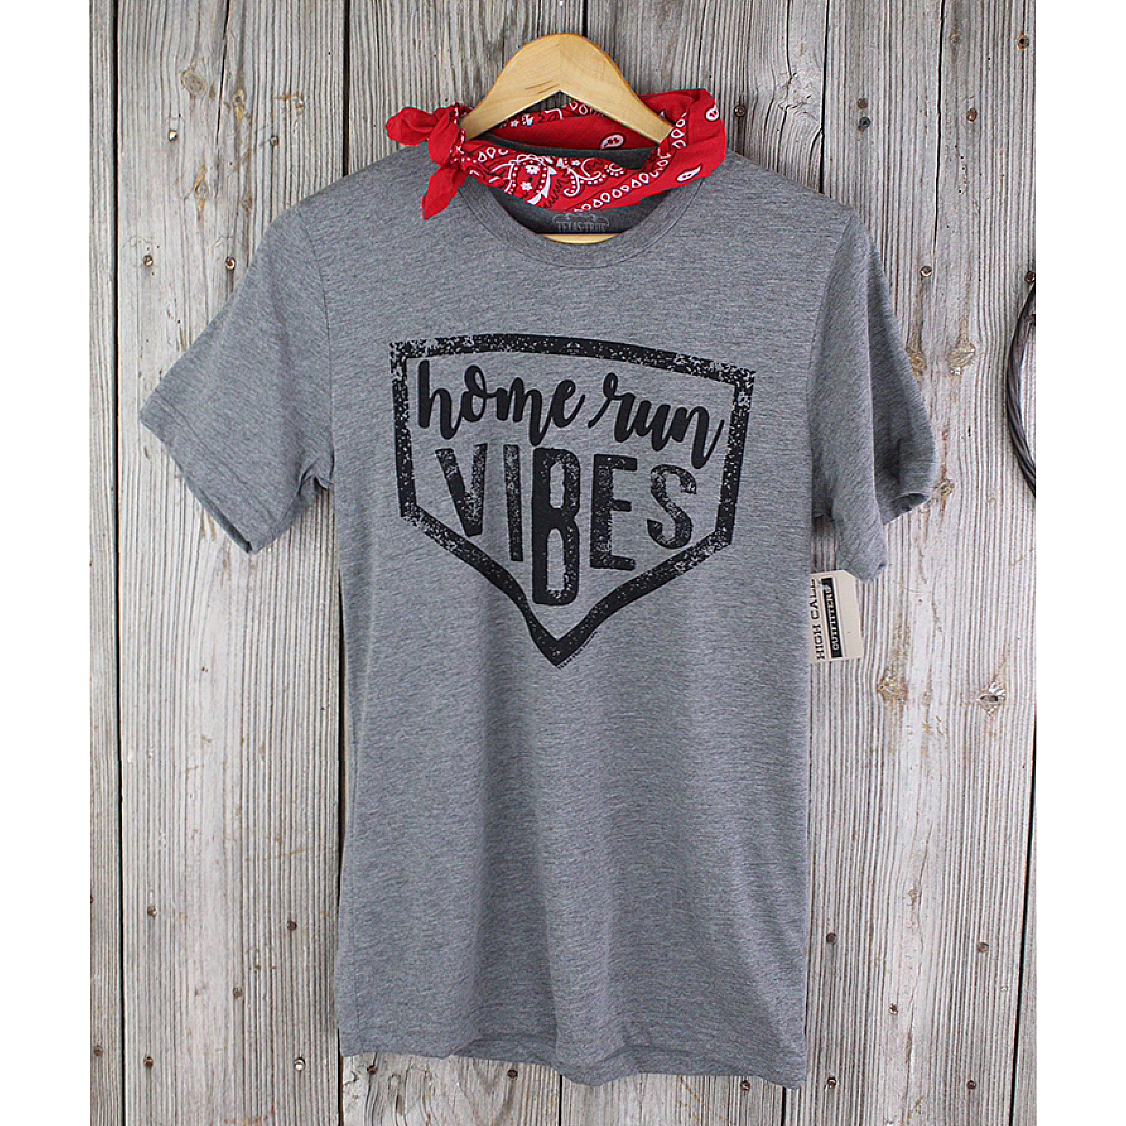 Home Run Vibes Tee Shirt